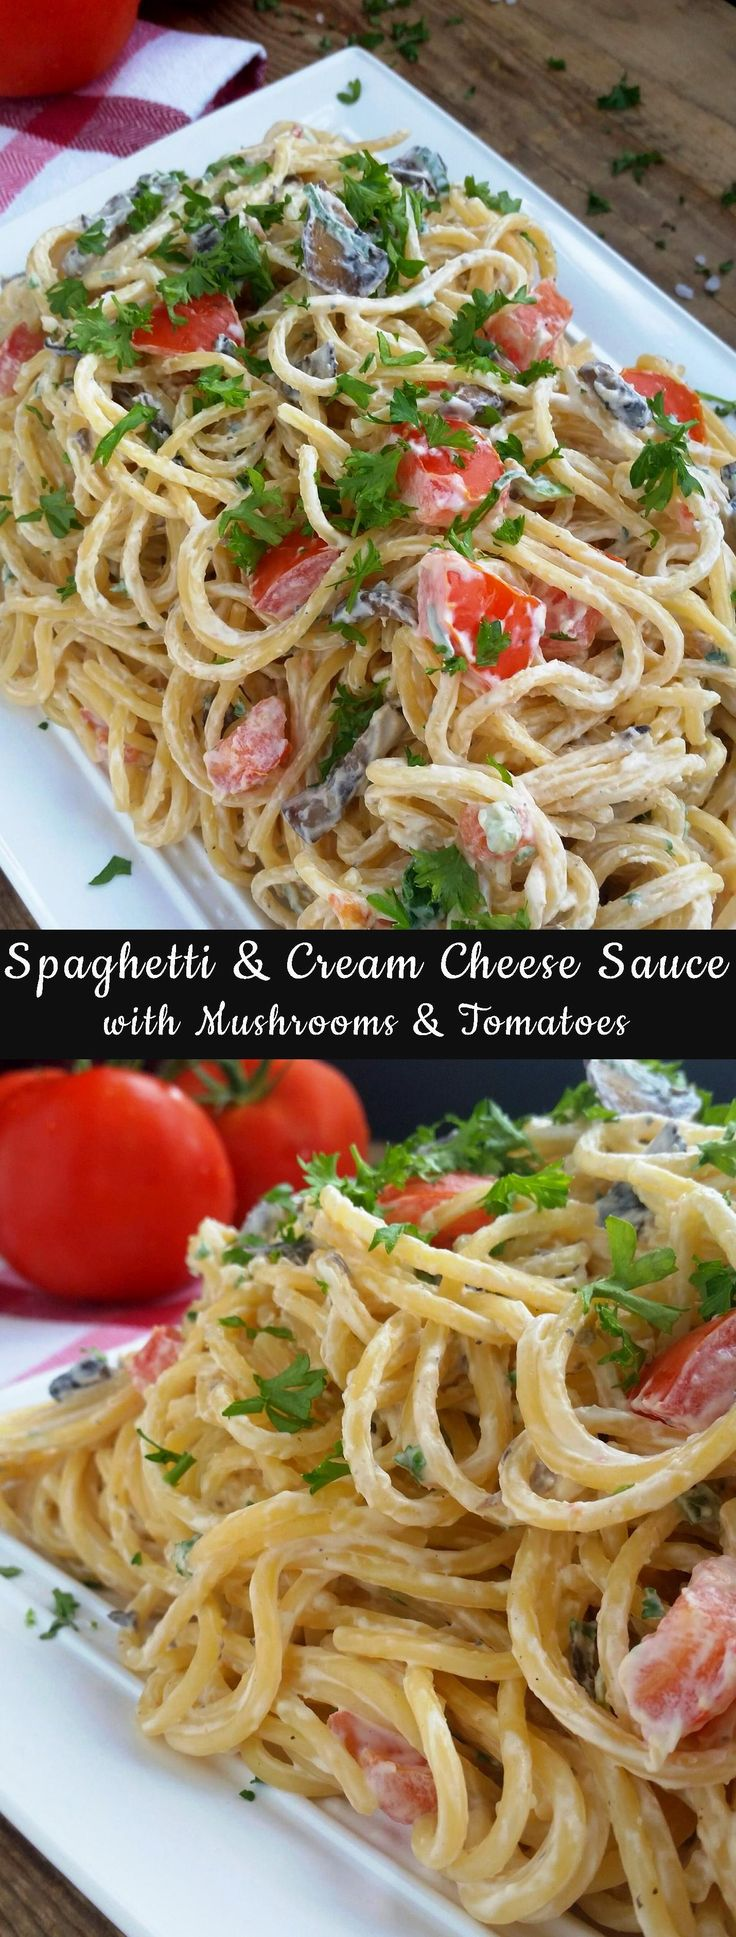 Spagetti and Cream Cheese Sauce with Mushrooms and Tomatoes